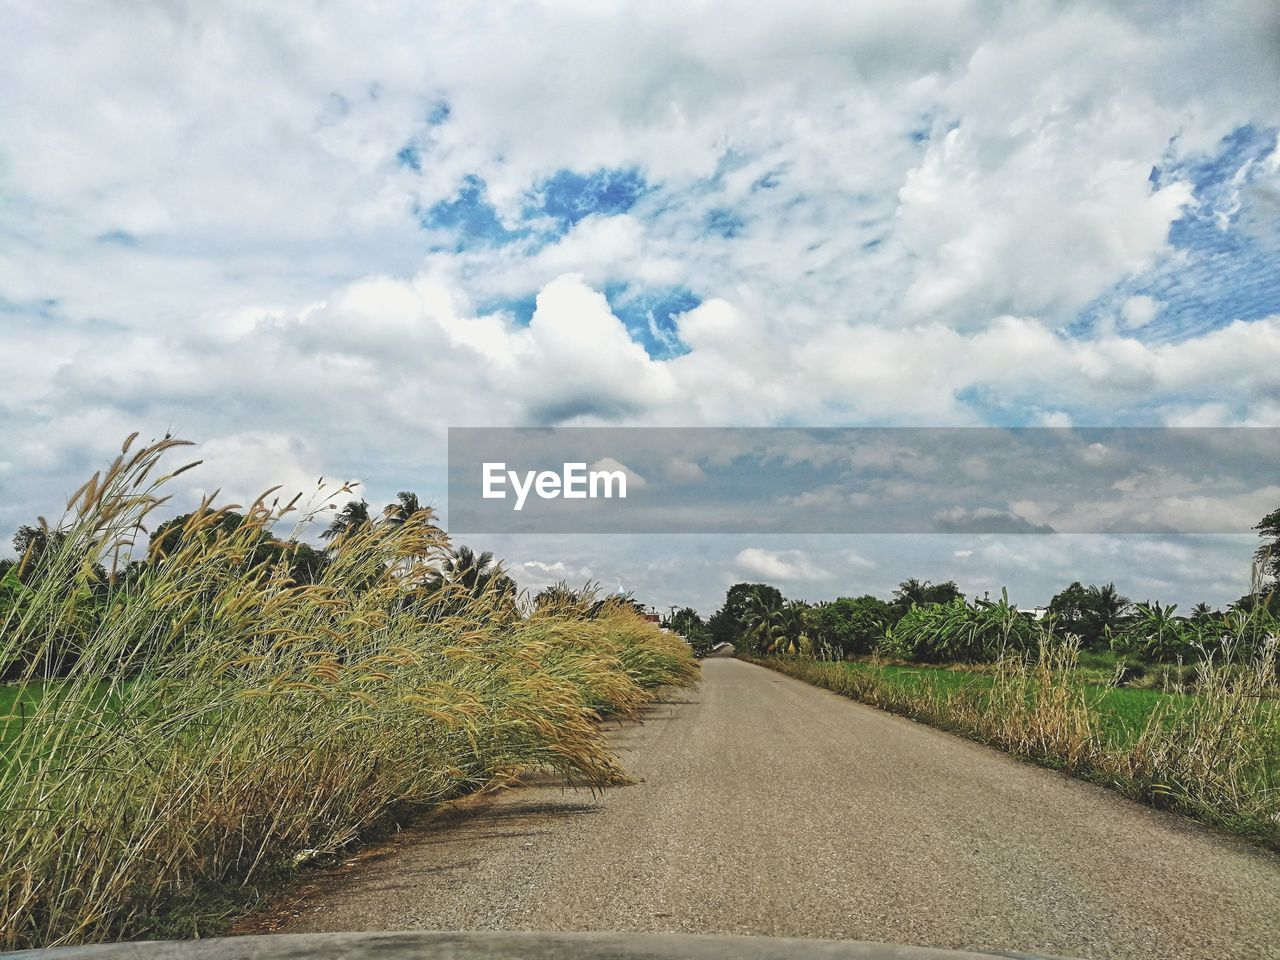 cloud - sky, sky, plant, road, beauty in nature, transportation, tranquility, nature, tranquil scene, landscape, the way forward, environment, direction, scenics - nature, land, day, no people, grass, growth, diminishing perspective, outdoors, long